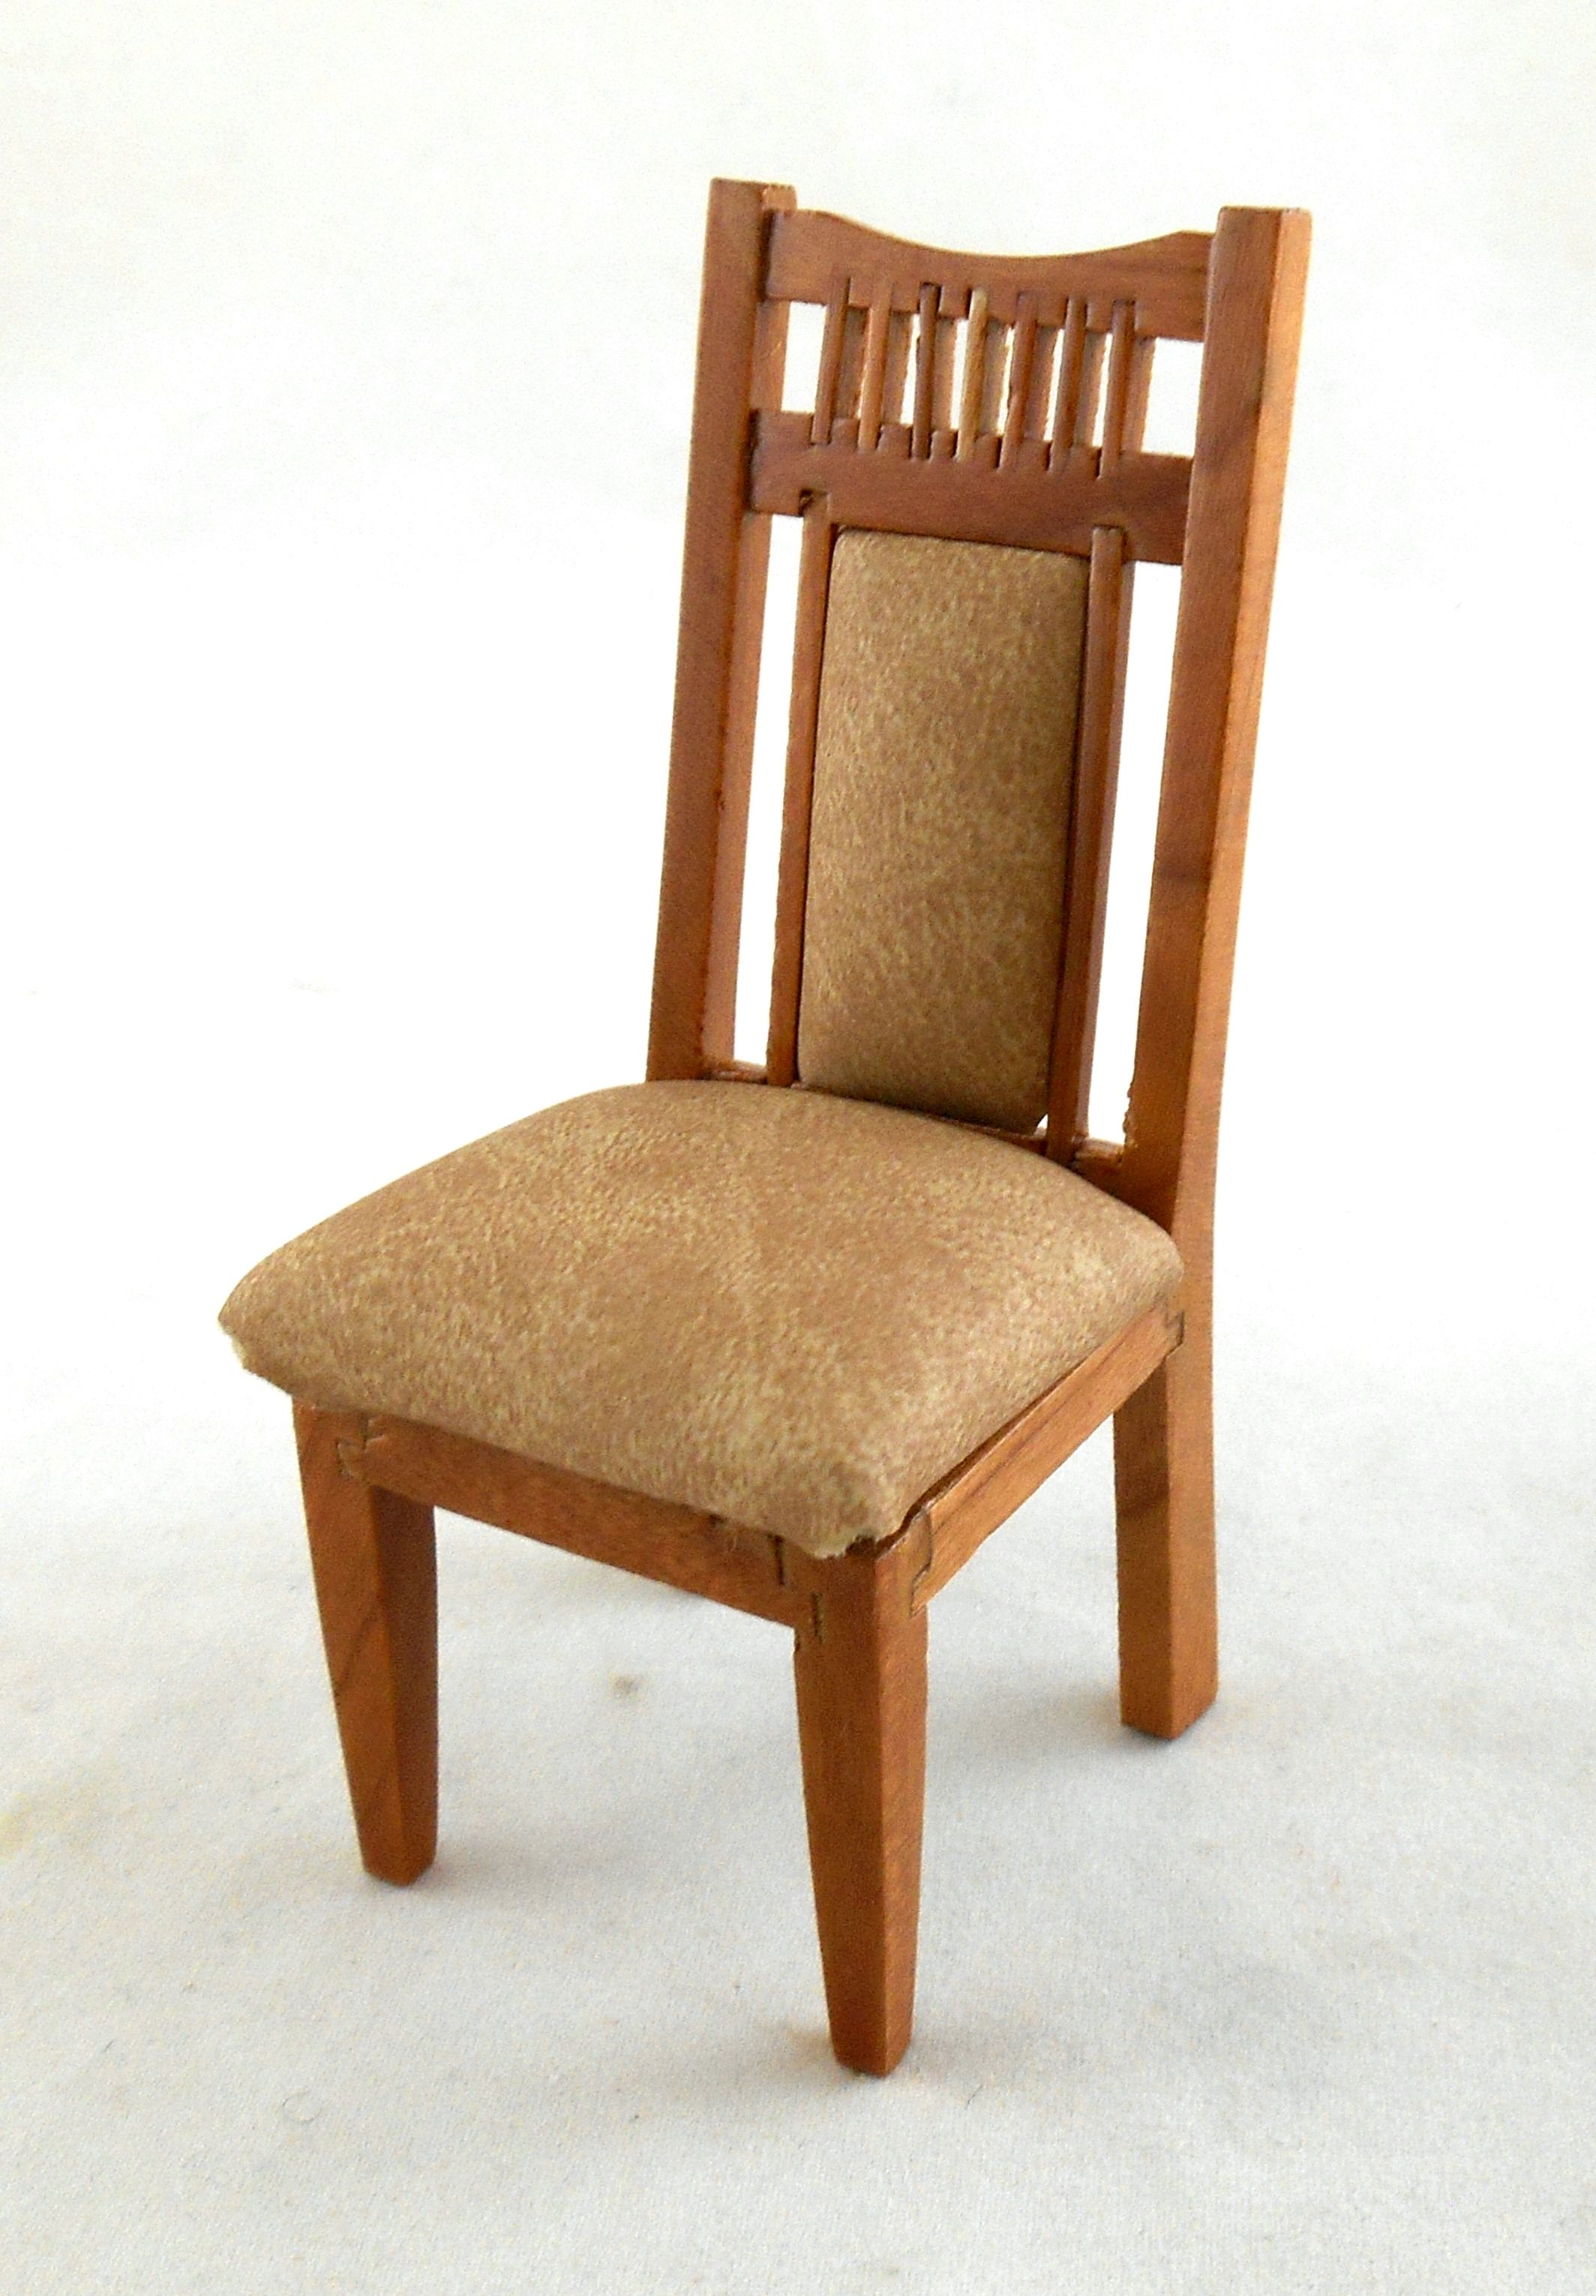 Agreeable Pecan Wood Dining Room Chairs